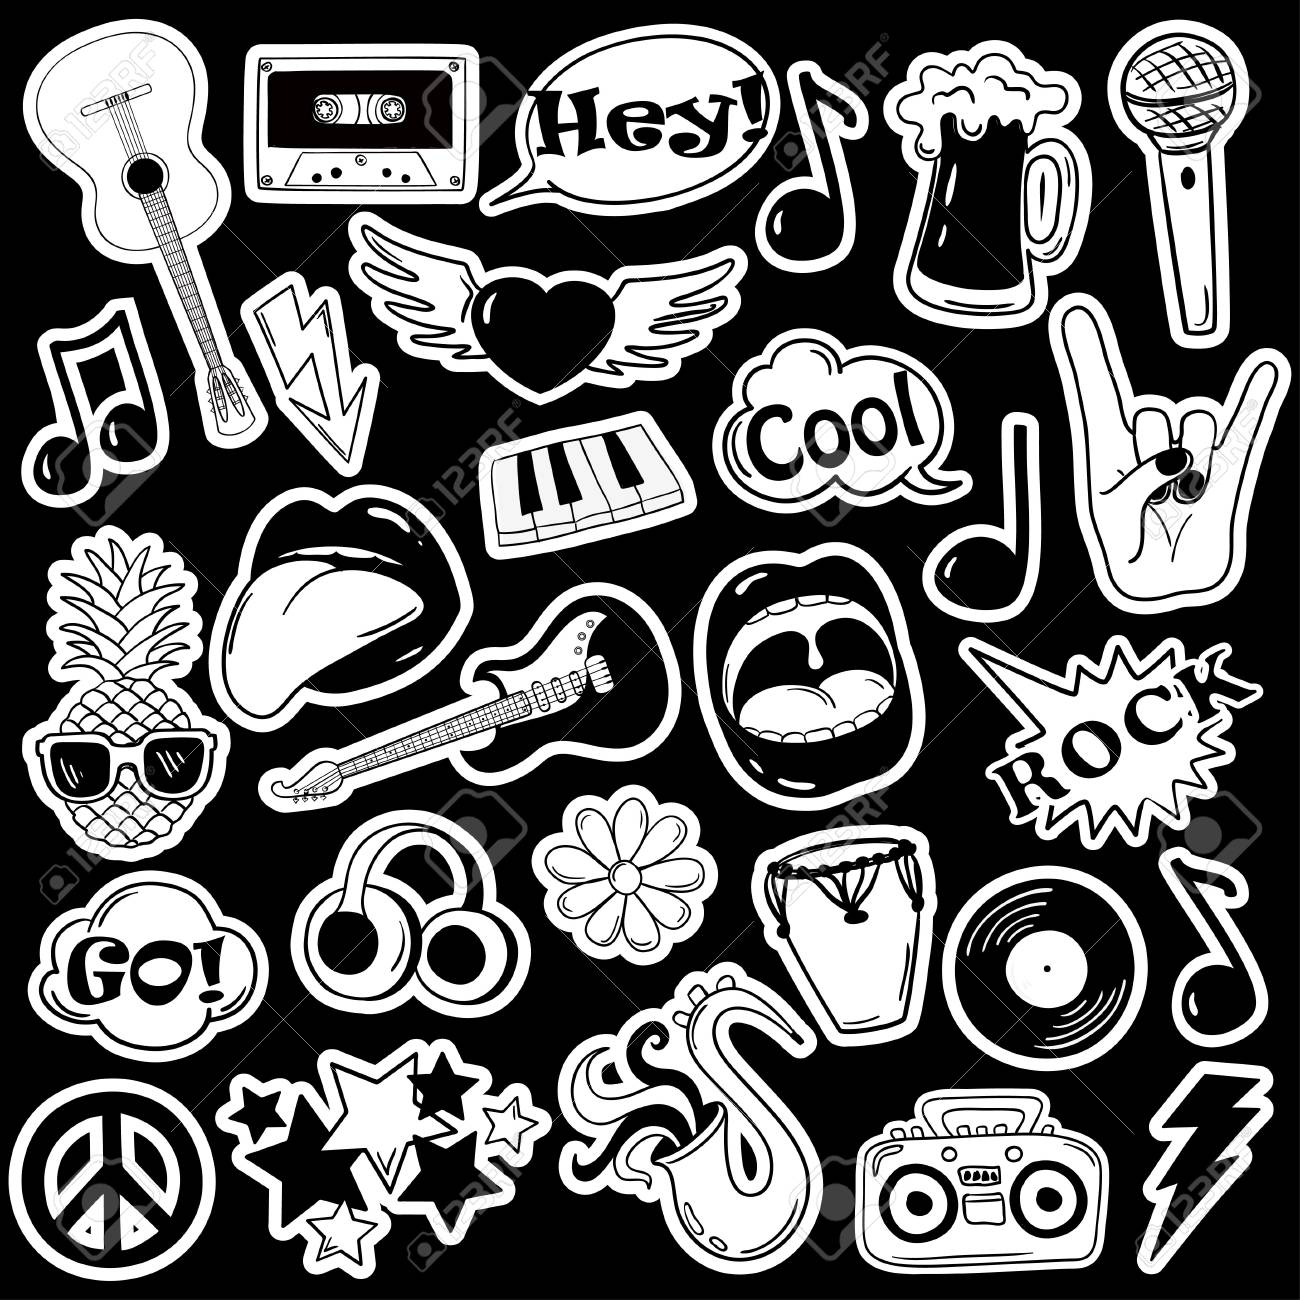 Black and white fun set of music stickers, icons, emoji, pins